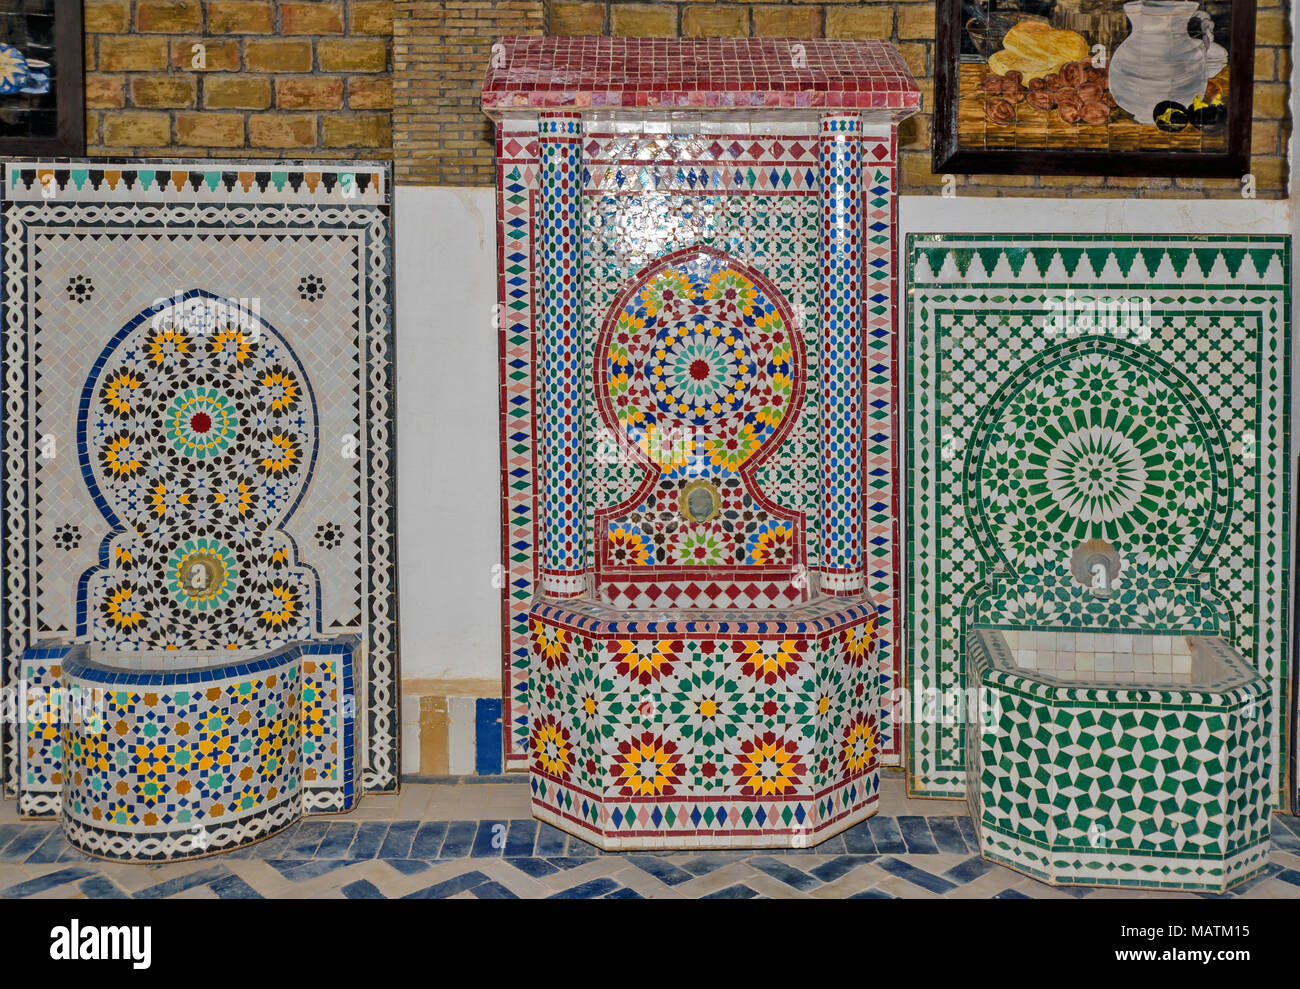 MOROCCO FES MEDINA SOUK ART NAJI FAMOUS BLUE HAND MADE POTTERY  ART MOSAIC PATTERNS AND MOSAIC DESIGNS ON SCREENS AND WATER BOWLS - Stock Image